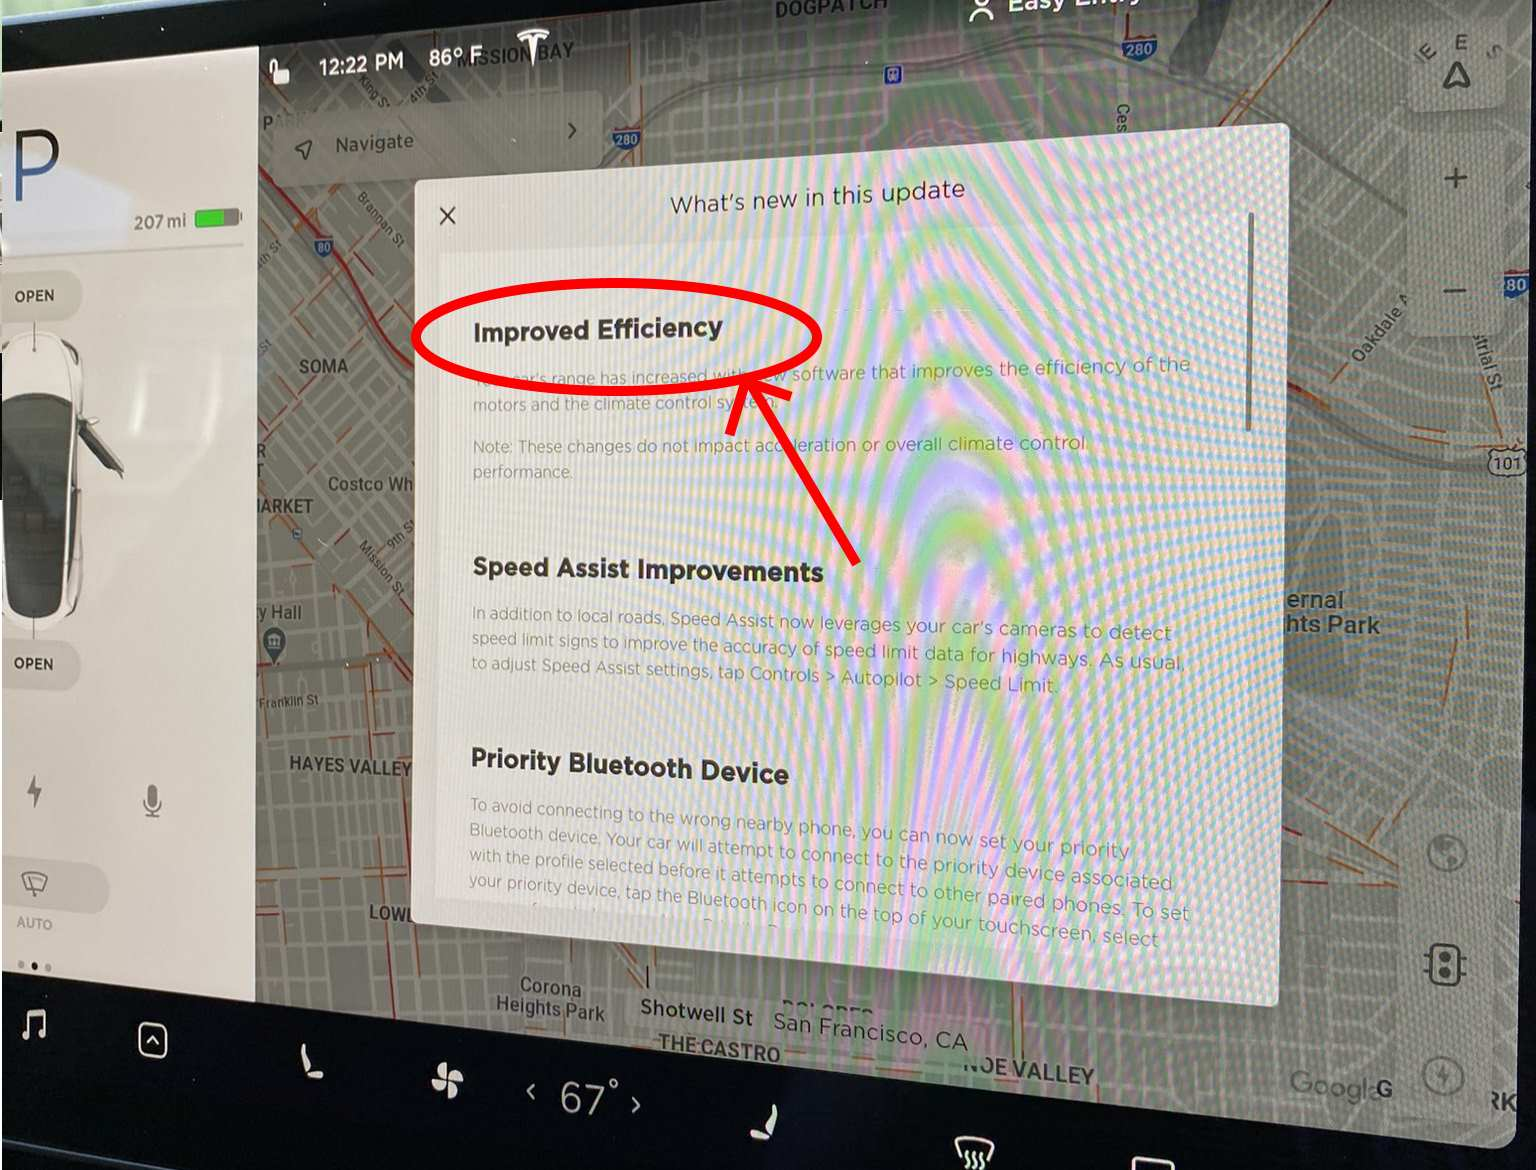 Tesla Rolls Out New Software Update To Increase Existing Vehicles Range & Efficiency